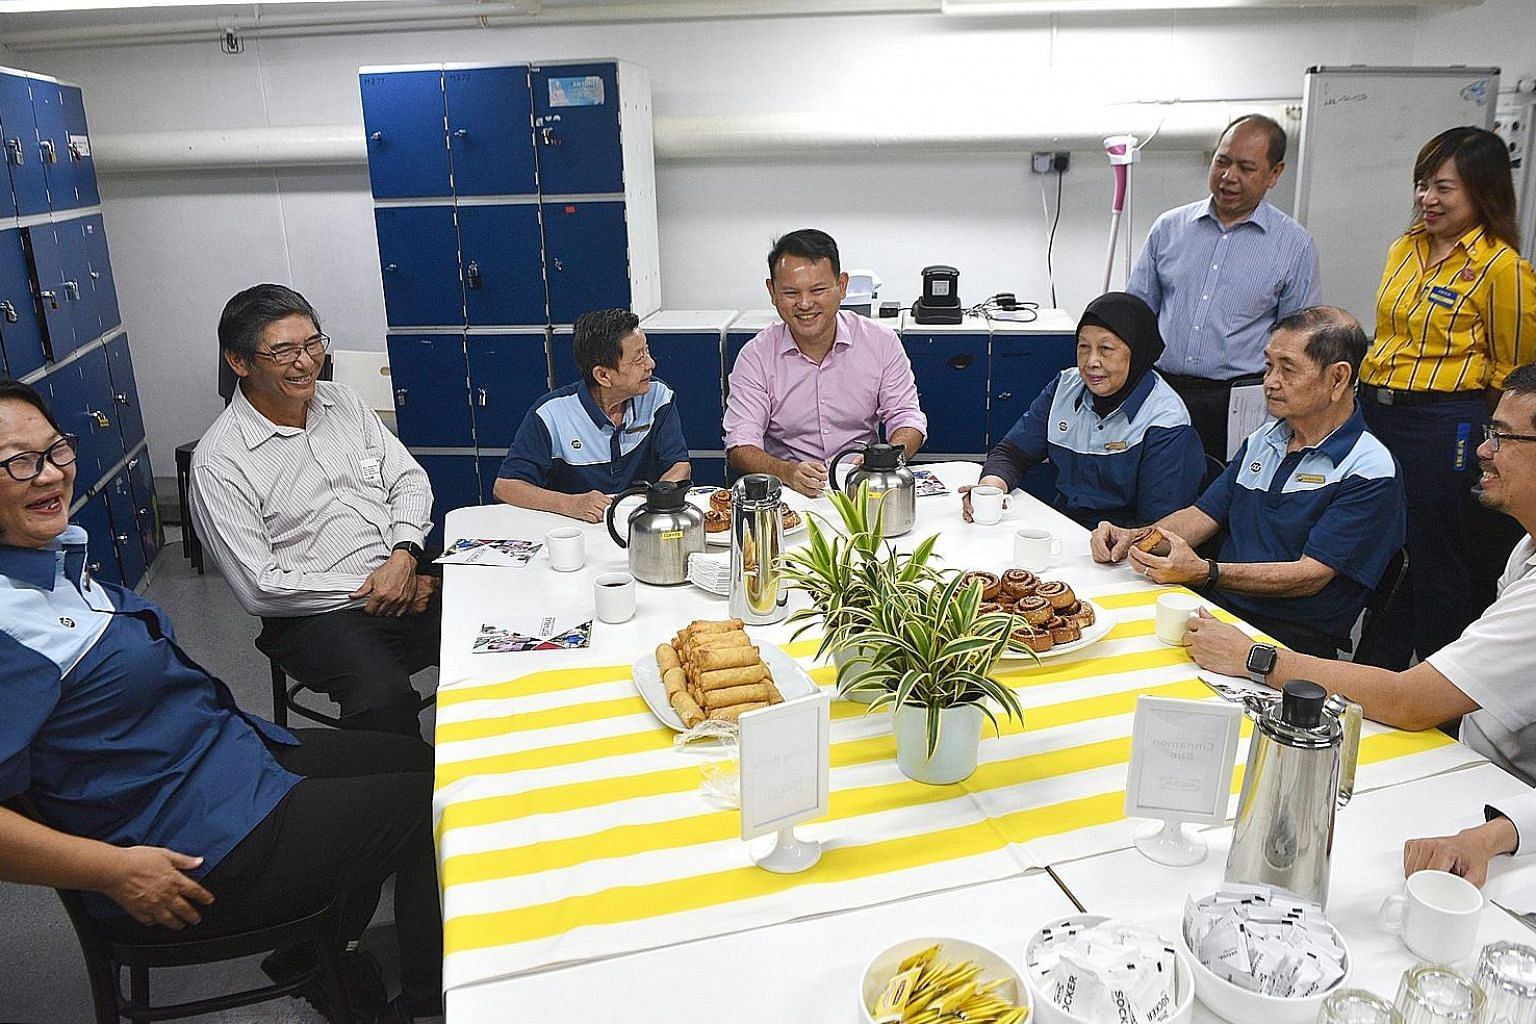 Minister of State for Manpower Zaqy Mohamad (centre), Singapore National Employers Federation member Jeffrey Chua (second from left) and National Trades Union Congress assistant secretary-general Zainal Sapari (right) with cleaners (from left) Lew Ch